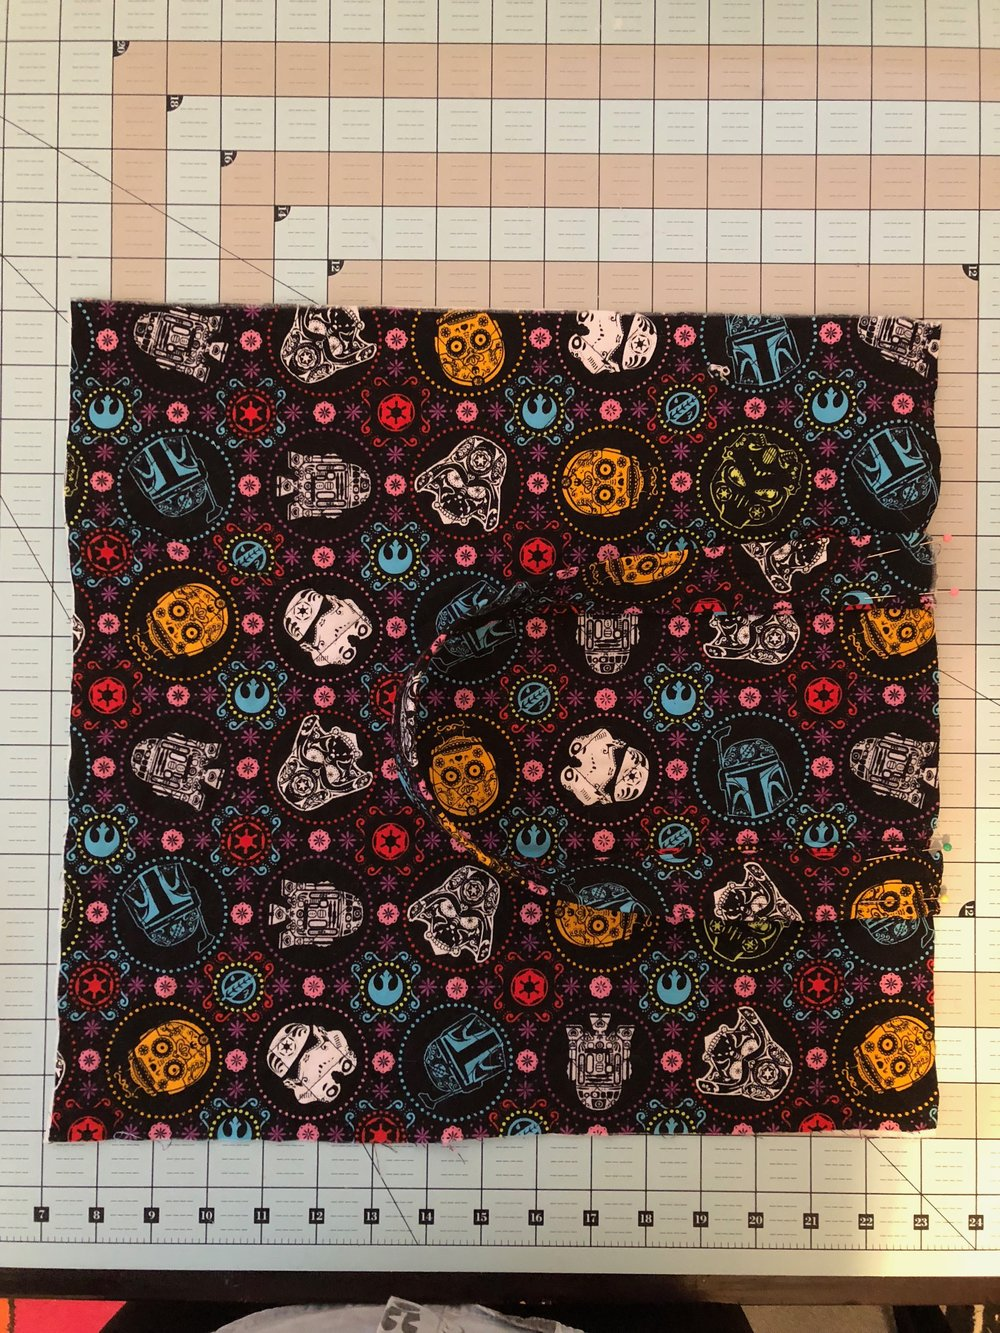 The strap pinned to the quilted outer fabric (step 8)